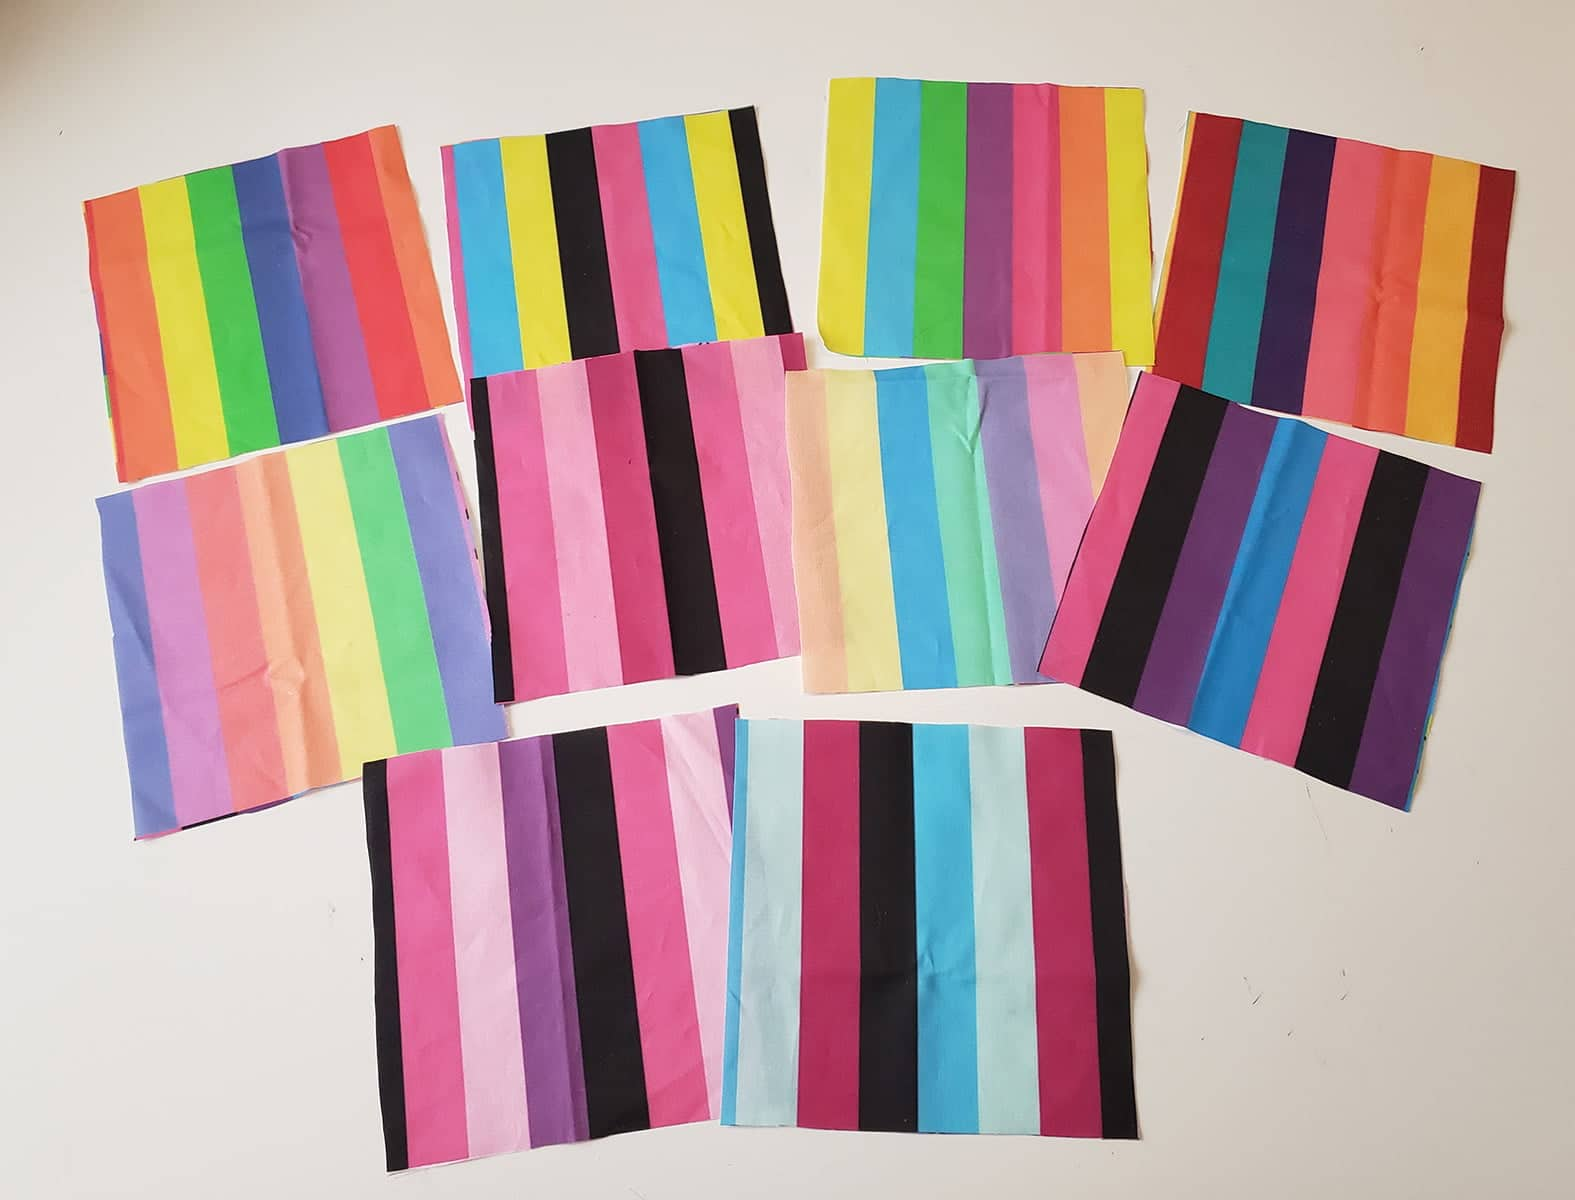 Several square cuts of brightly coloured print fabric are arranged against a white background.